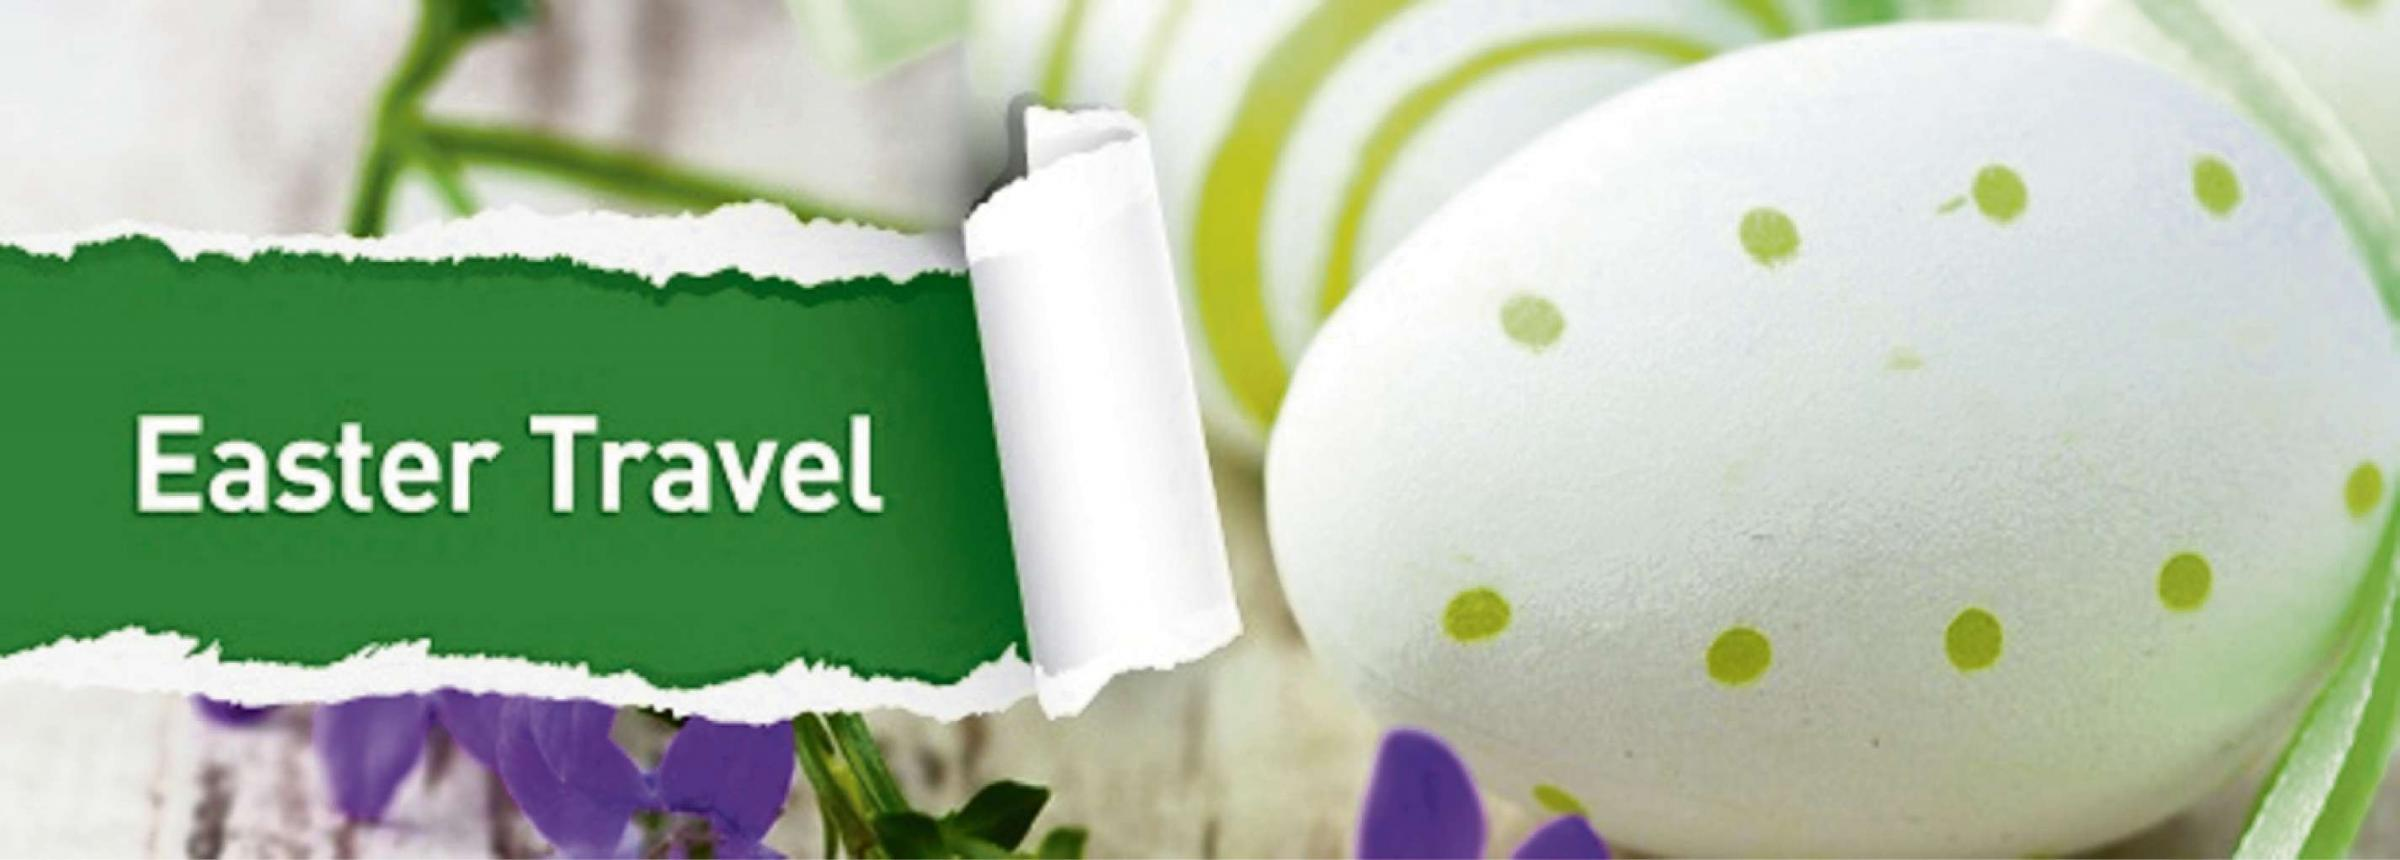 TAKING A TRIP: County residents have been urged to check their travel plans over the Easter holidays.